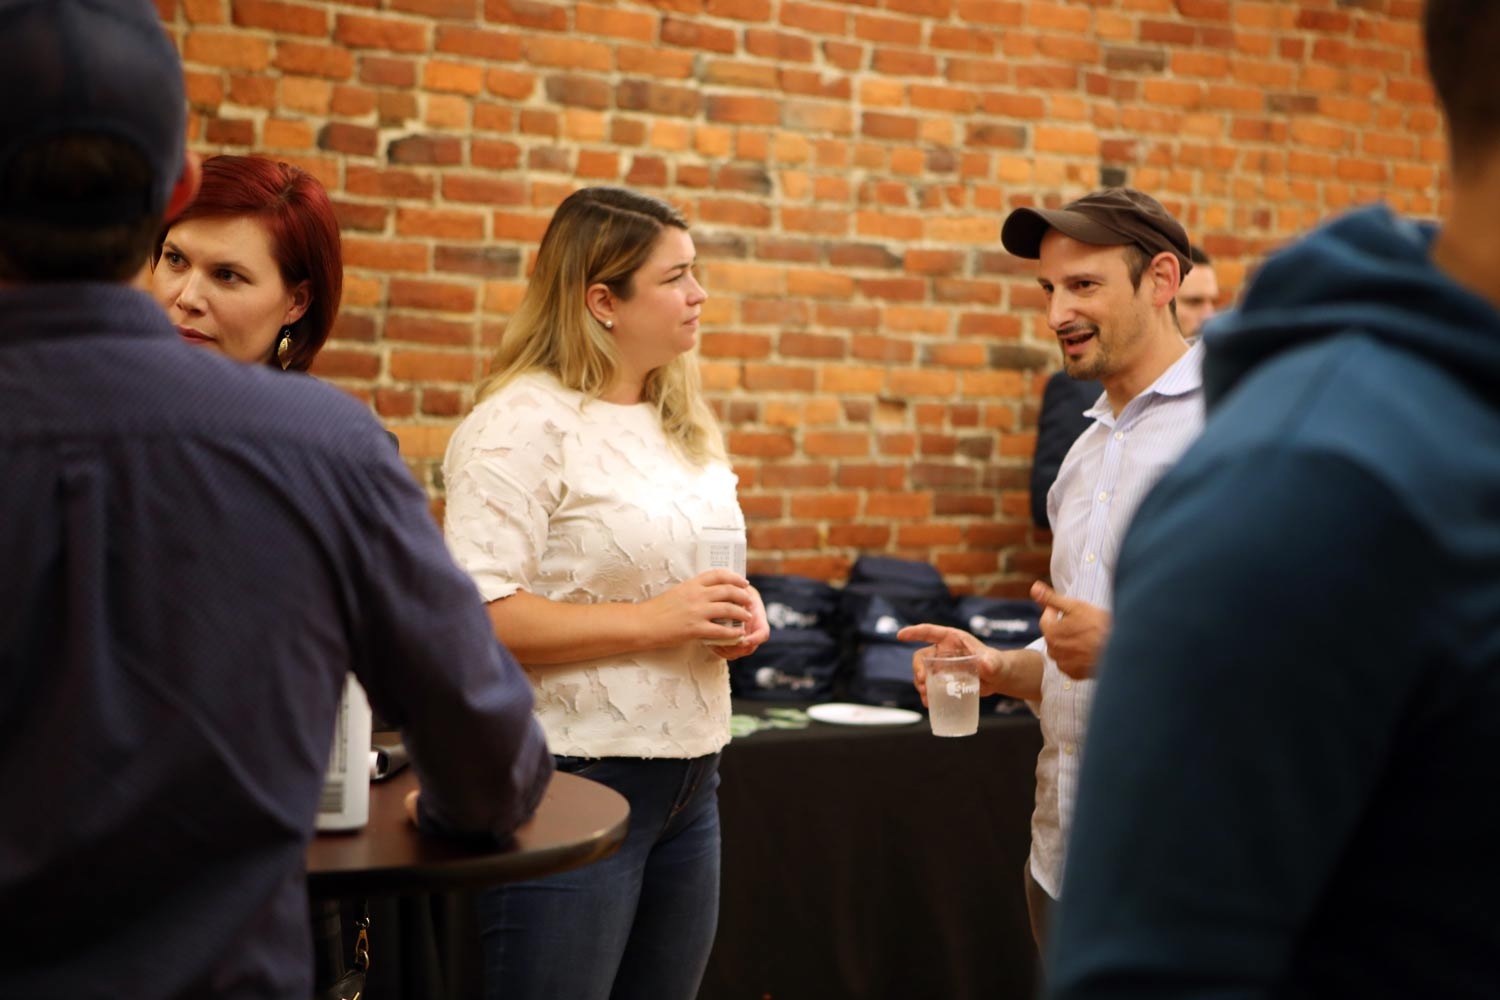 Speakers Sam Mundell and Daniel Steinberg talk before their presentations at the Shopify Meetup Columbus